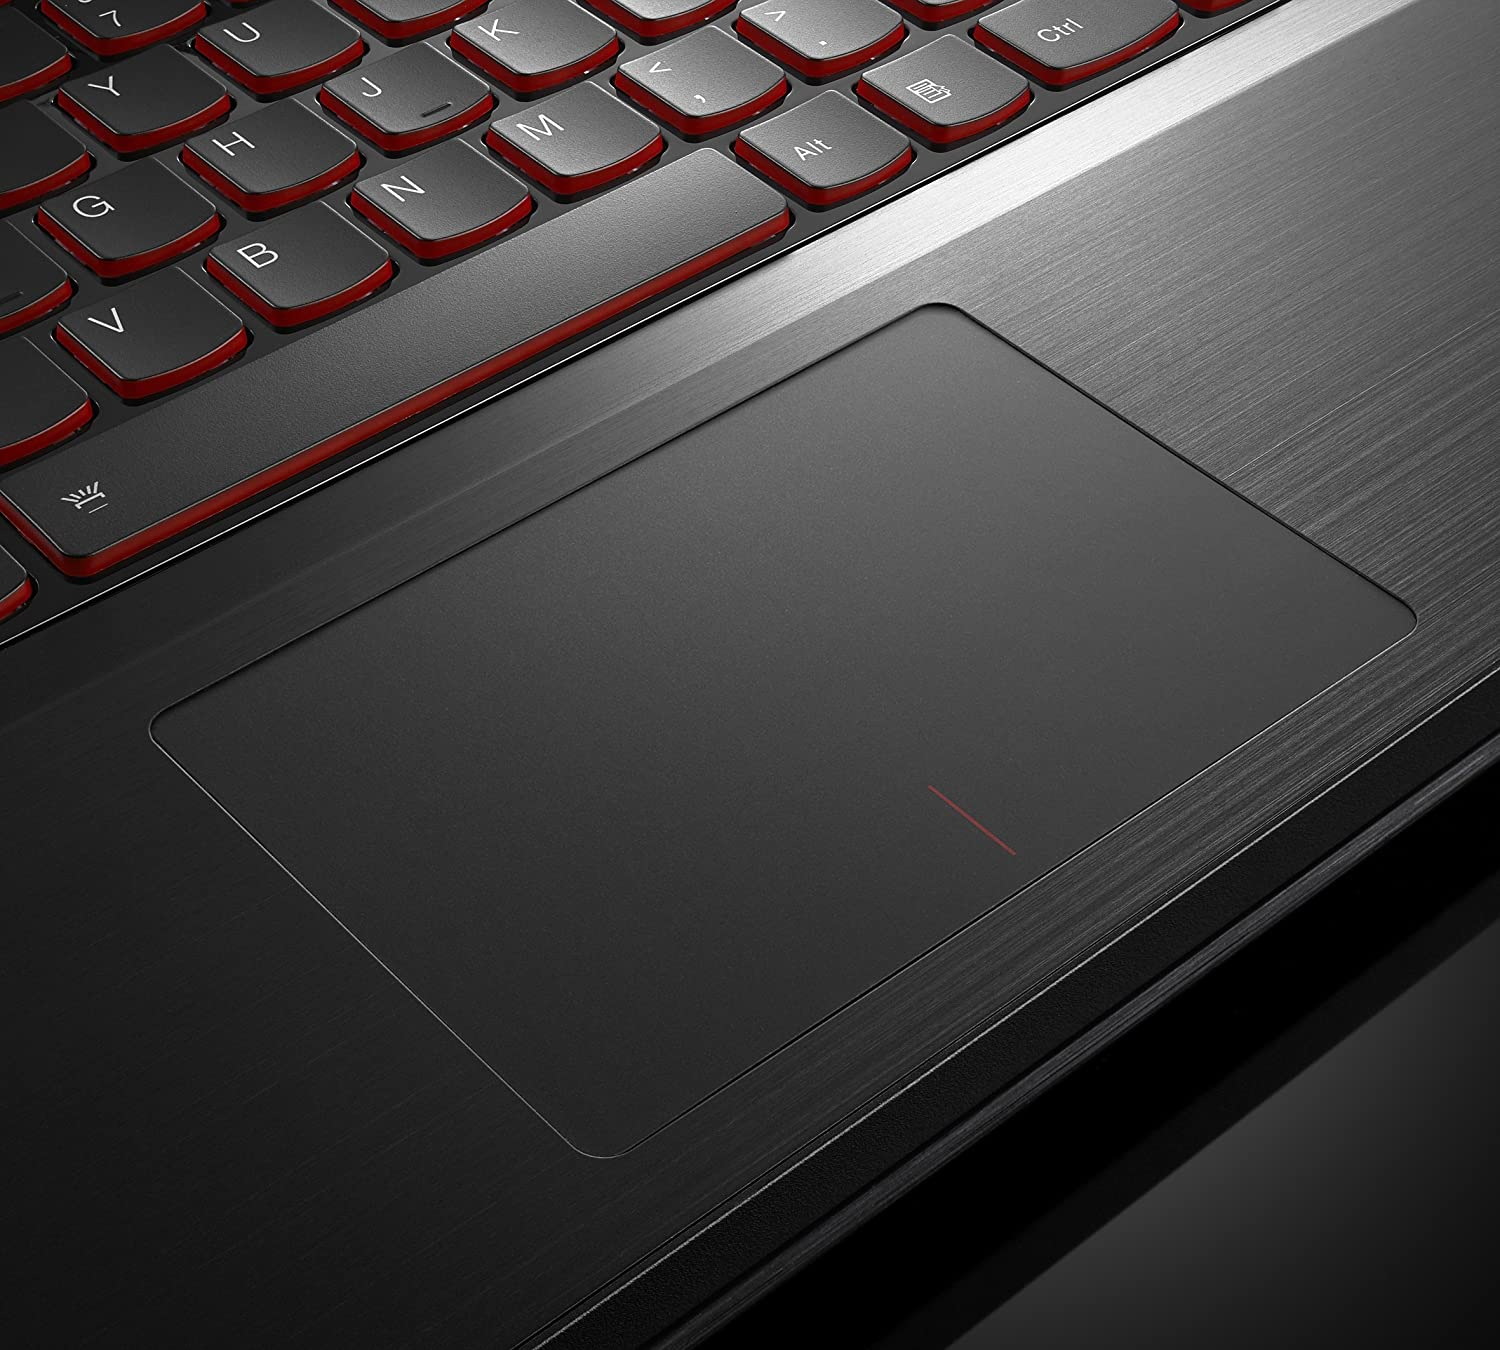 Lenovo reveals new business laptops with hot swap battery feature - Amazon Com Lenovo Ideapad Y510p 59388313 15 6 Inch Laptop Dusk Black Computers Accessories